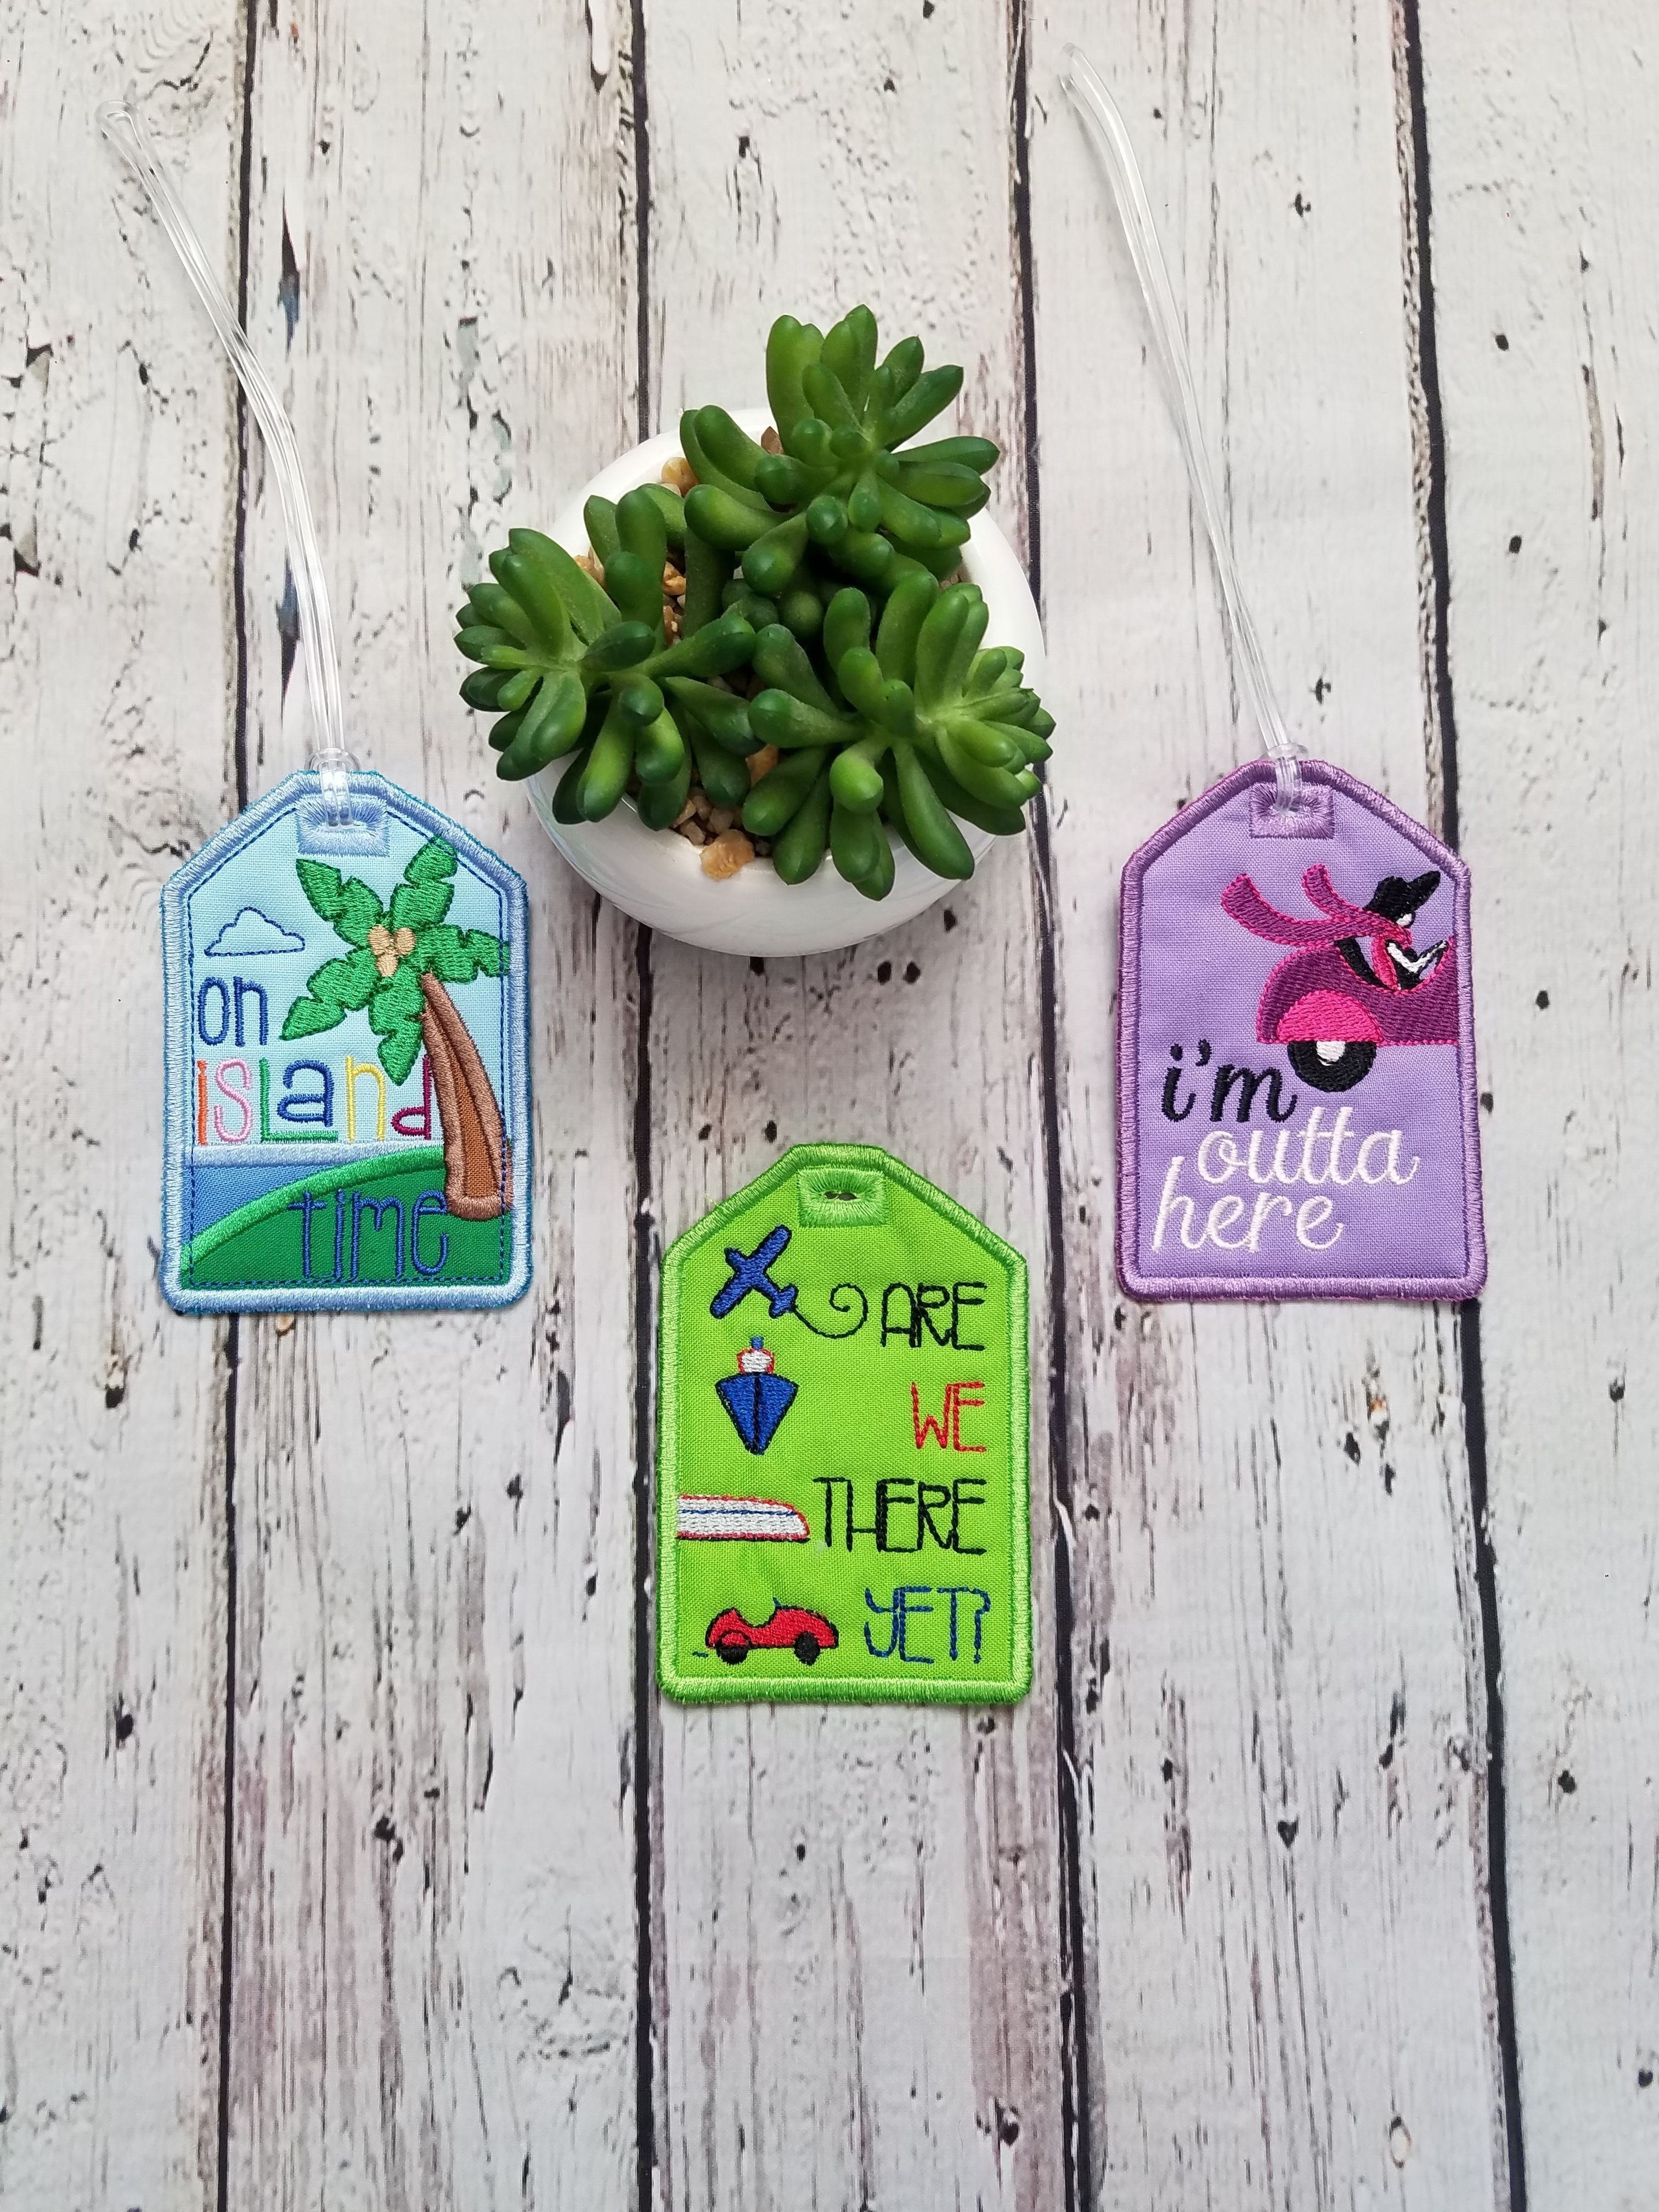 Travel in style with these Embroidered Luggage Tags.   Help make your luggage stand out from the rest.   Choose from: On island time                           Are we there yet?                           I'm outta here  #baggagetags #handmadeluggagetag #luggageaccessories #familyvacationtrip  #identificationtags #luggageidtag #baggageidtag #luggagelabel  #travelidtag #worldtraveler #suitcaseidtag #arewethereyet  #customluggagetag